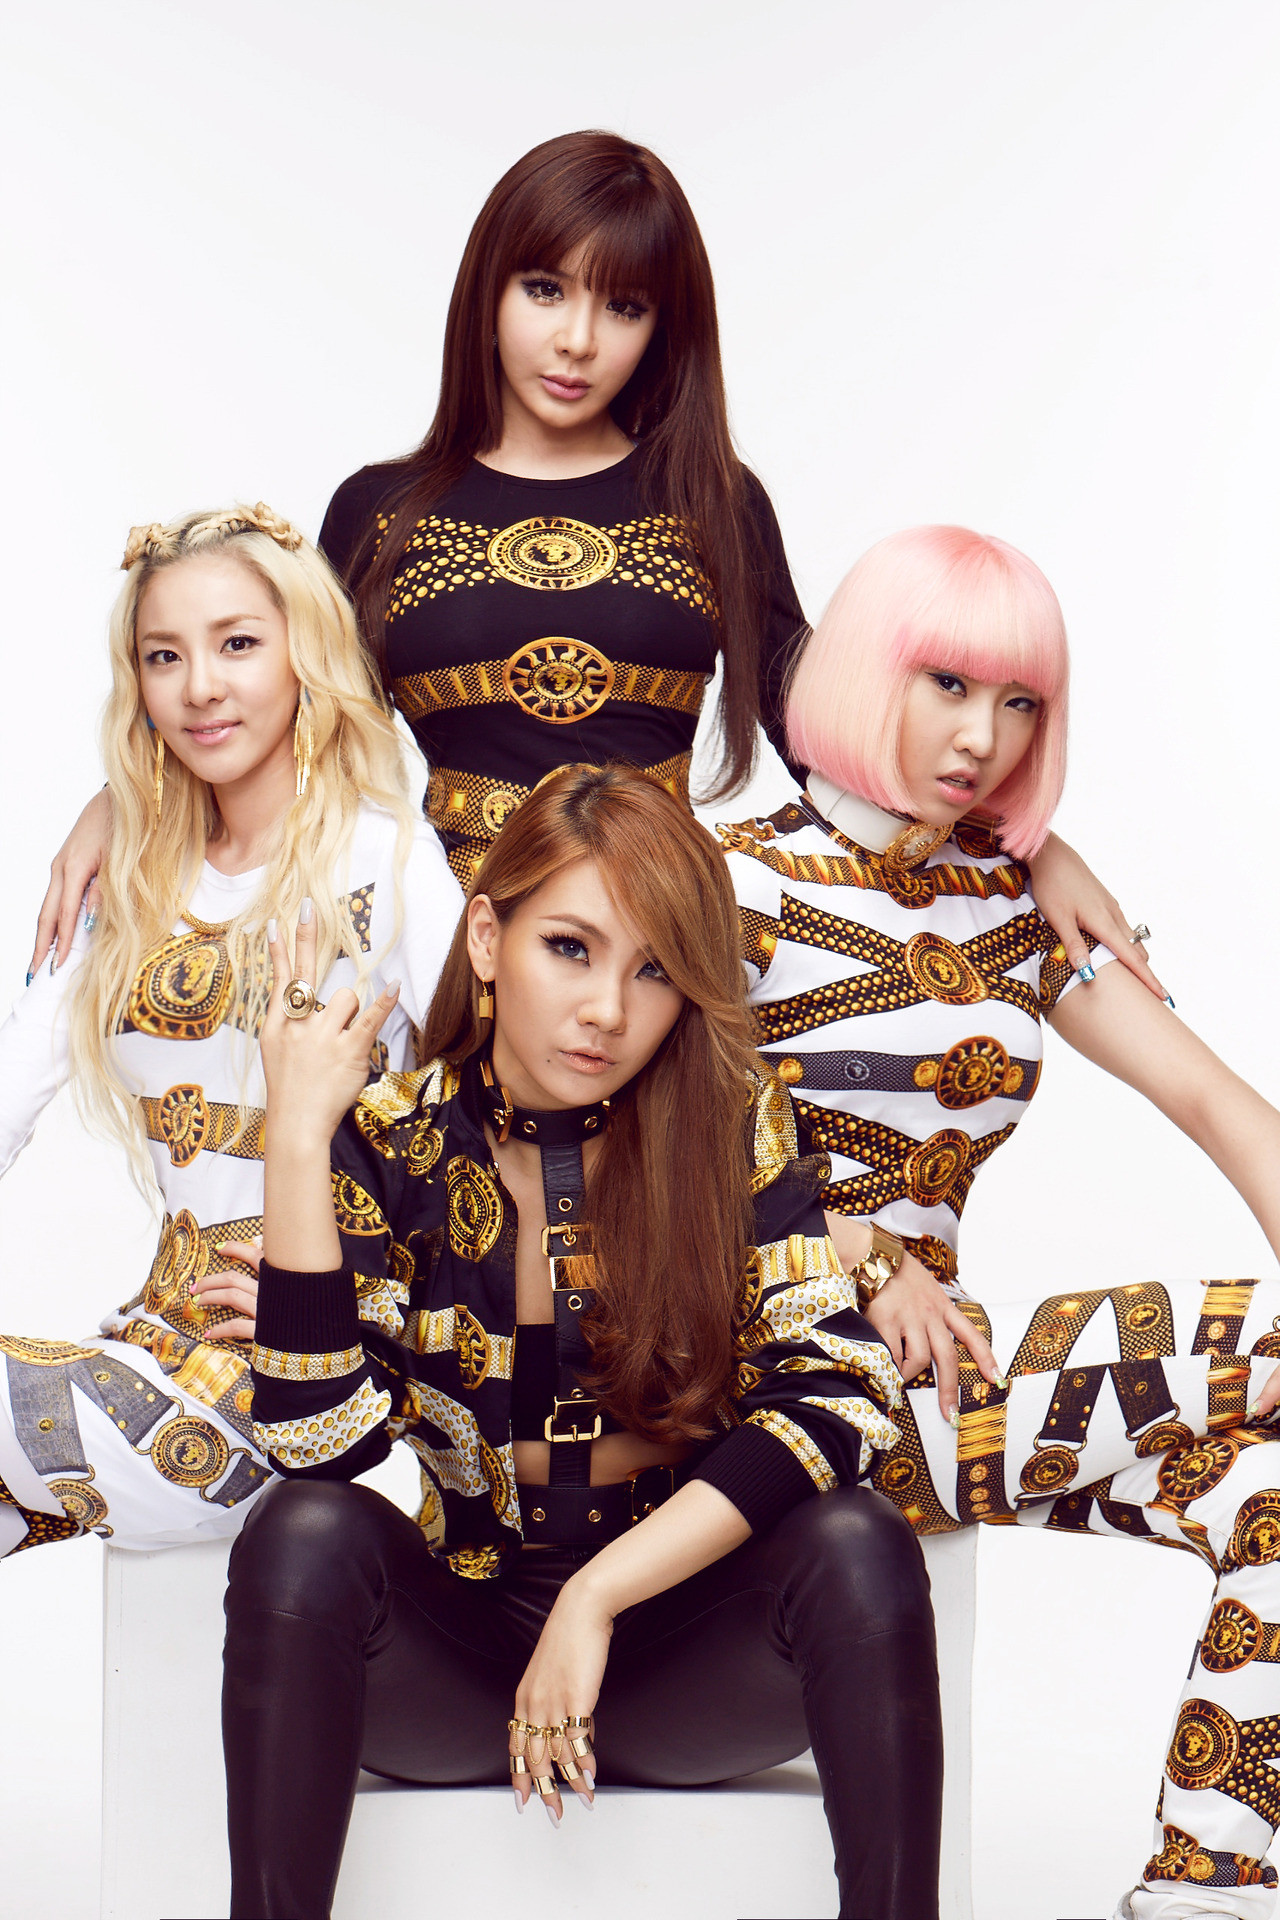 2ne1 Android Iphone Wallpaper 677 Asiachan Kpop Image Board